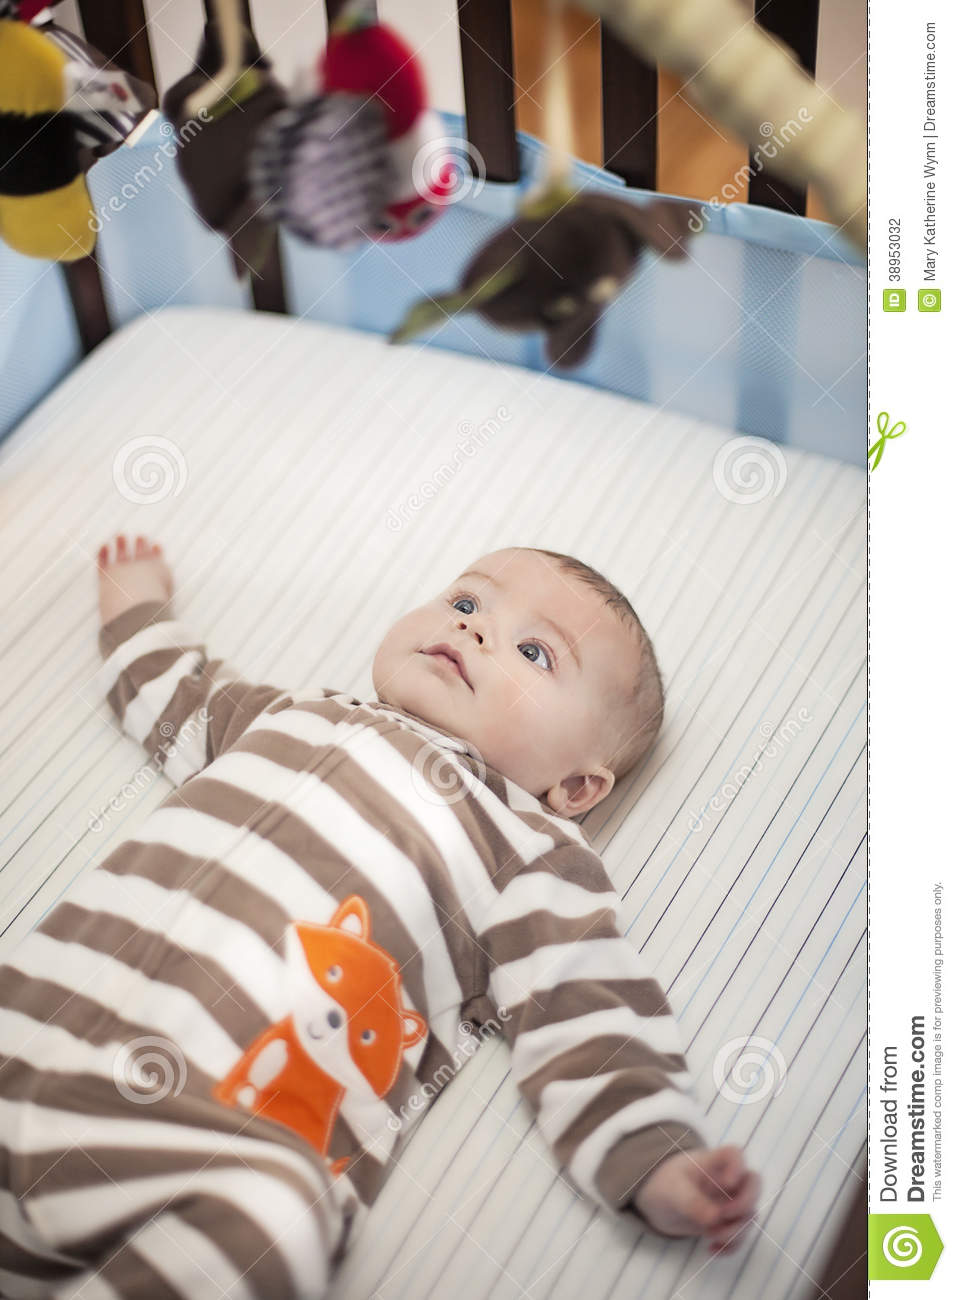 Baby In Crib Stock Photo Image Of Eyes Face Playing